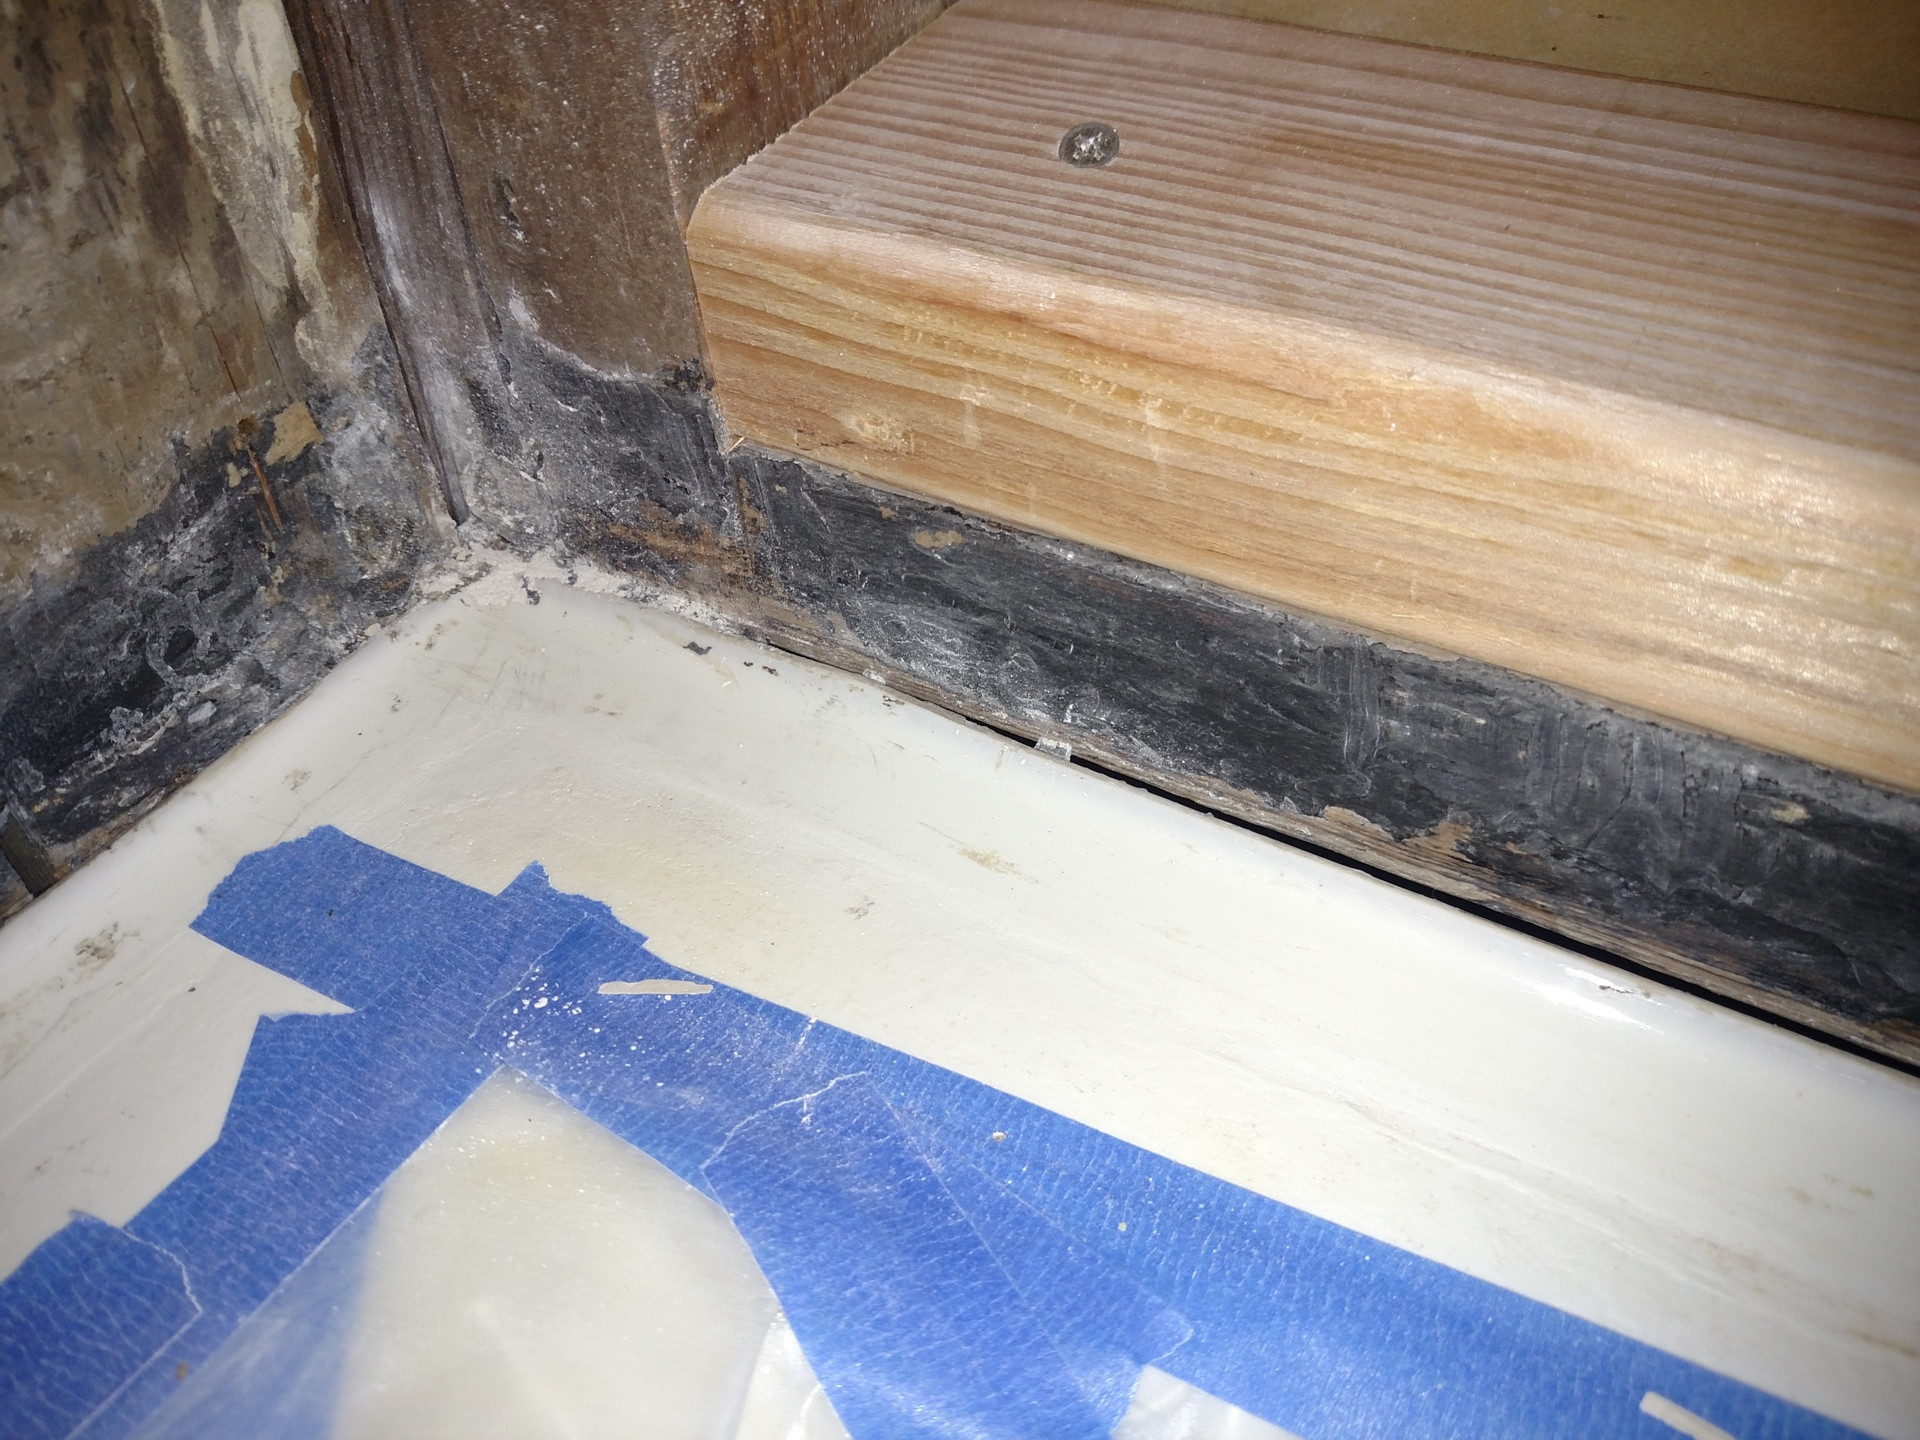 acceptable gap in hardwood floor of drywall to backerboard transition in tiled showers regarding thanks for all your articles and comment responses ive read through many and learned a lot for this project